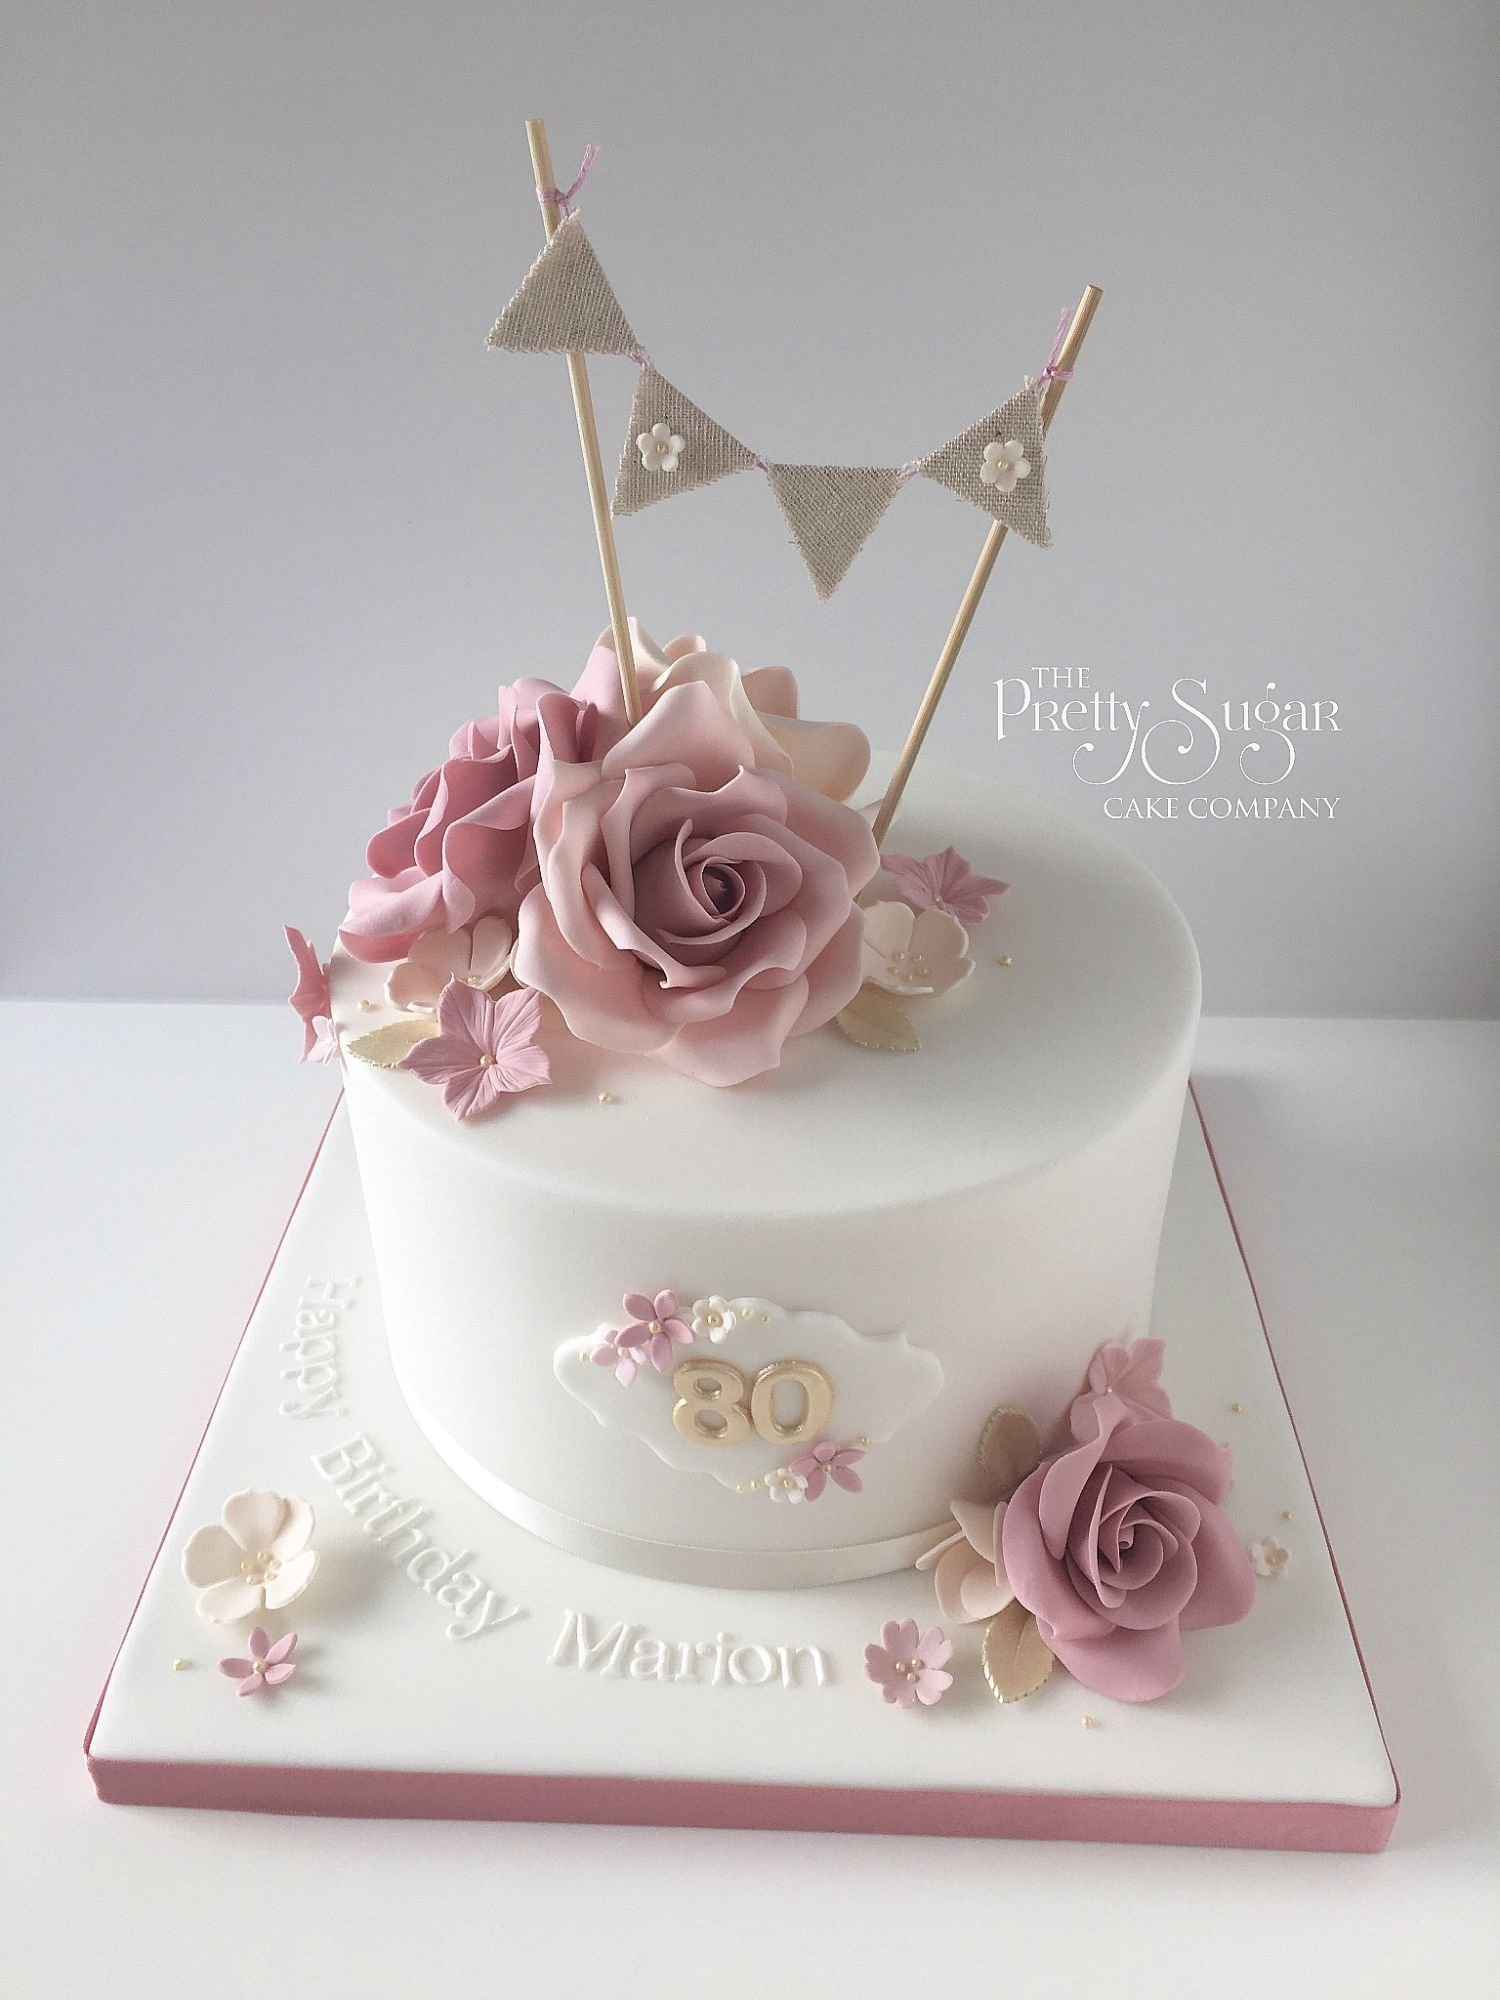 10 Awesome Birthday Cake Ideas For Women Vintage Style 80th With Sugar Roses And